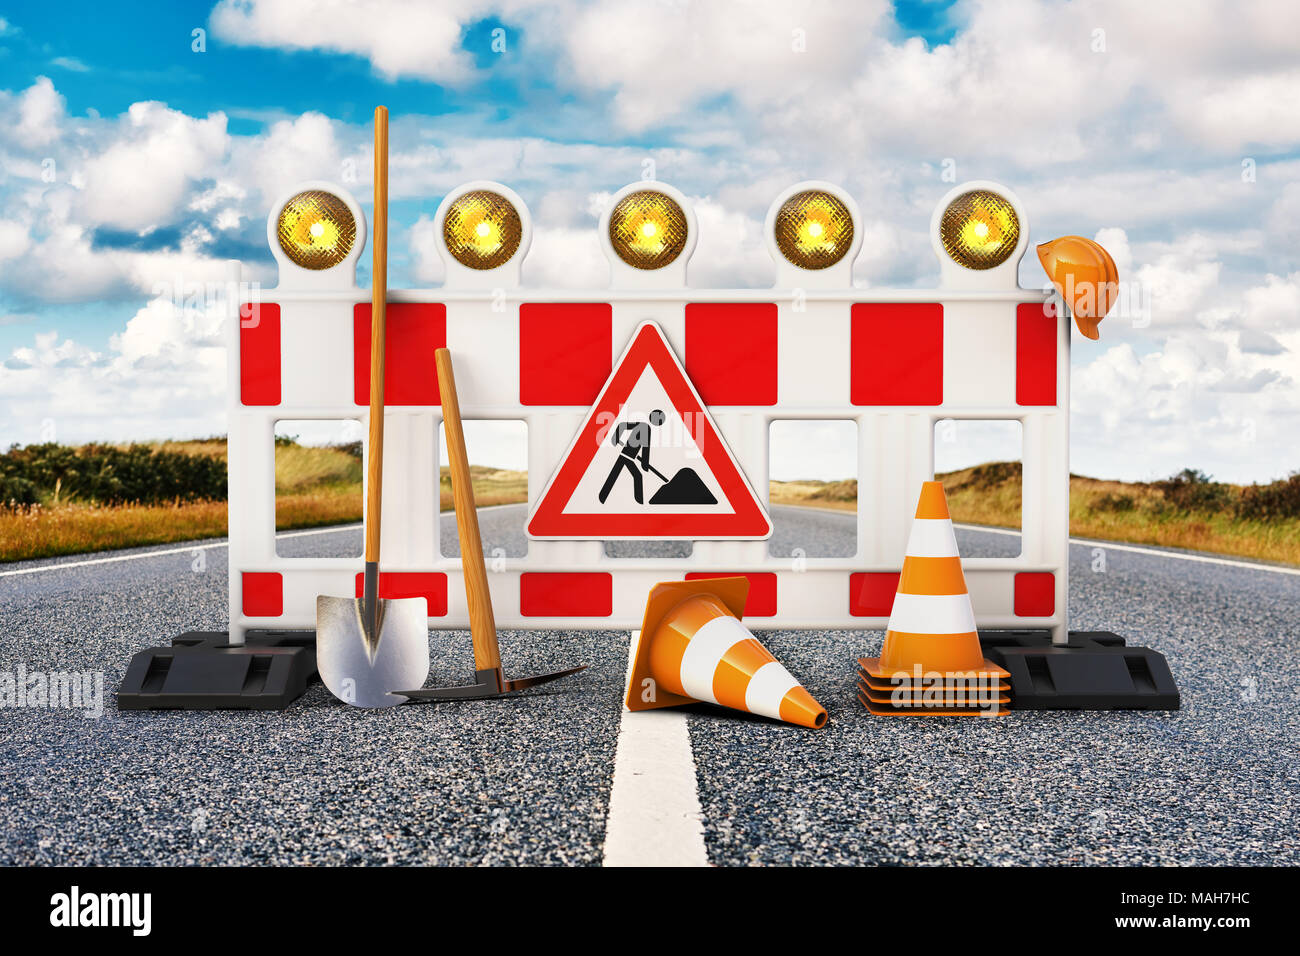 Street barrier with shovel, traffic sign, traffic cone and safety helmet on the road 3D rendering Stock Photo